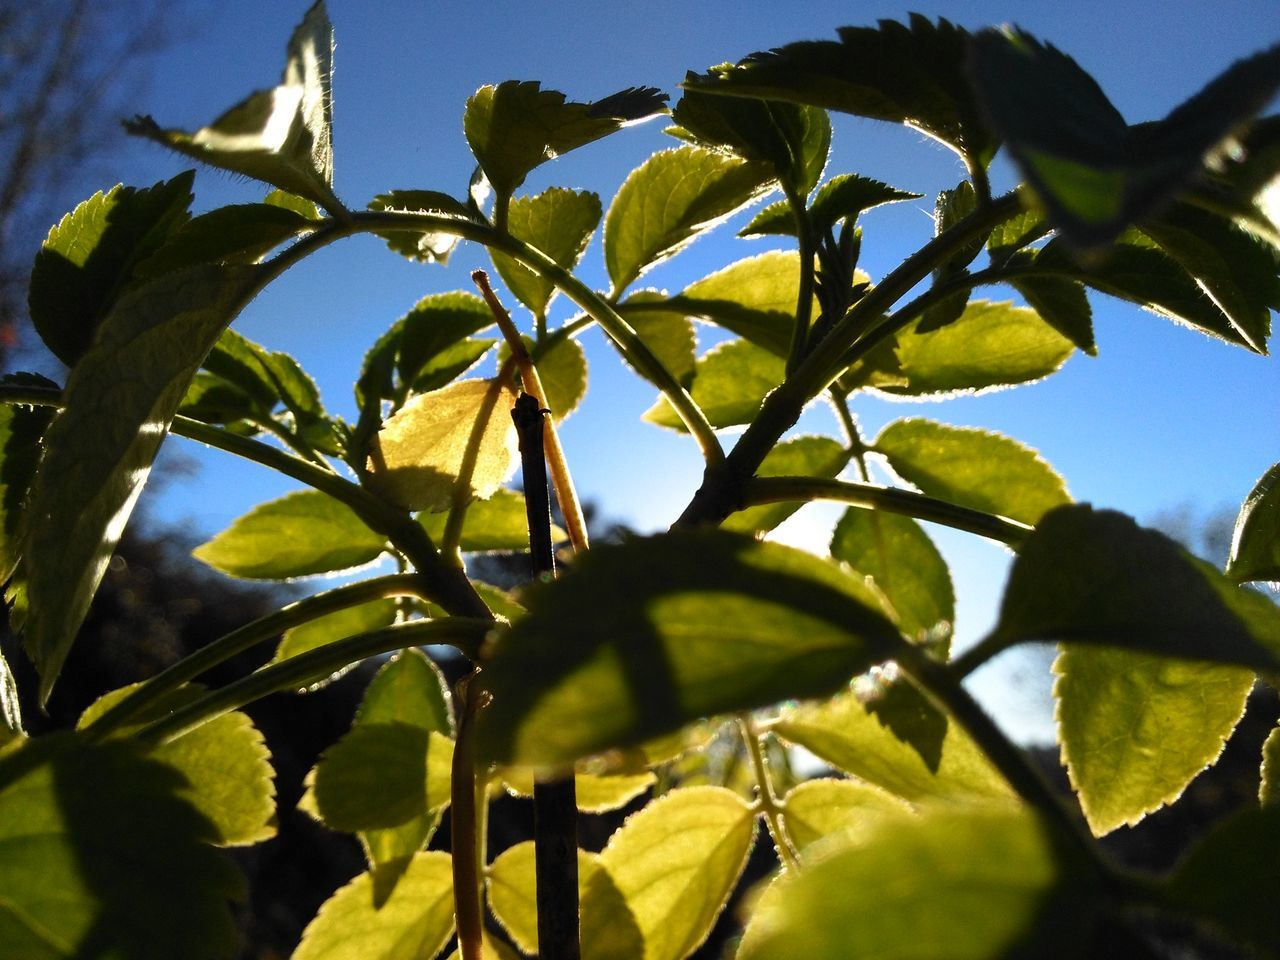 leaf, growth, sunlight, nature, no people, plant, day, tree, outdoors, low angle view, close-up, beauty in nature, branch, sky, freshness